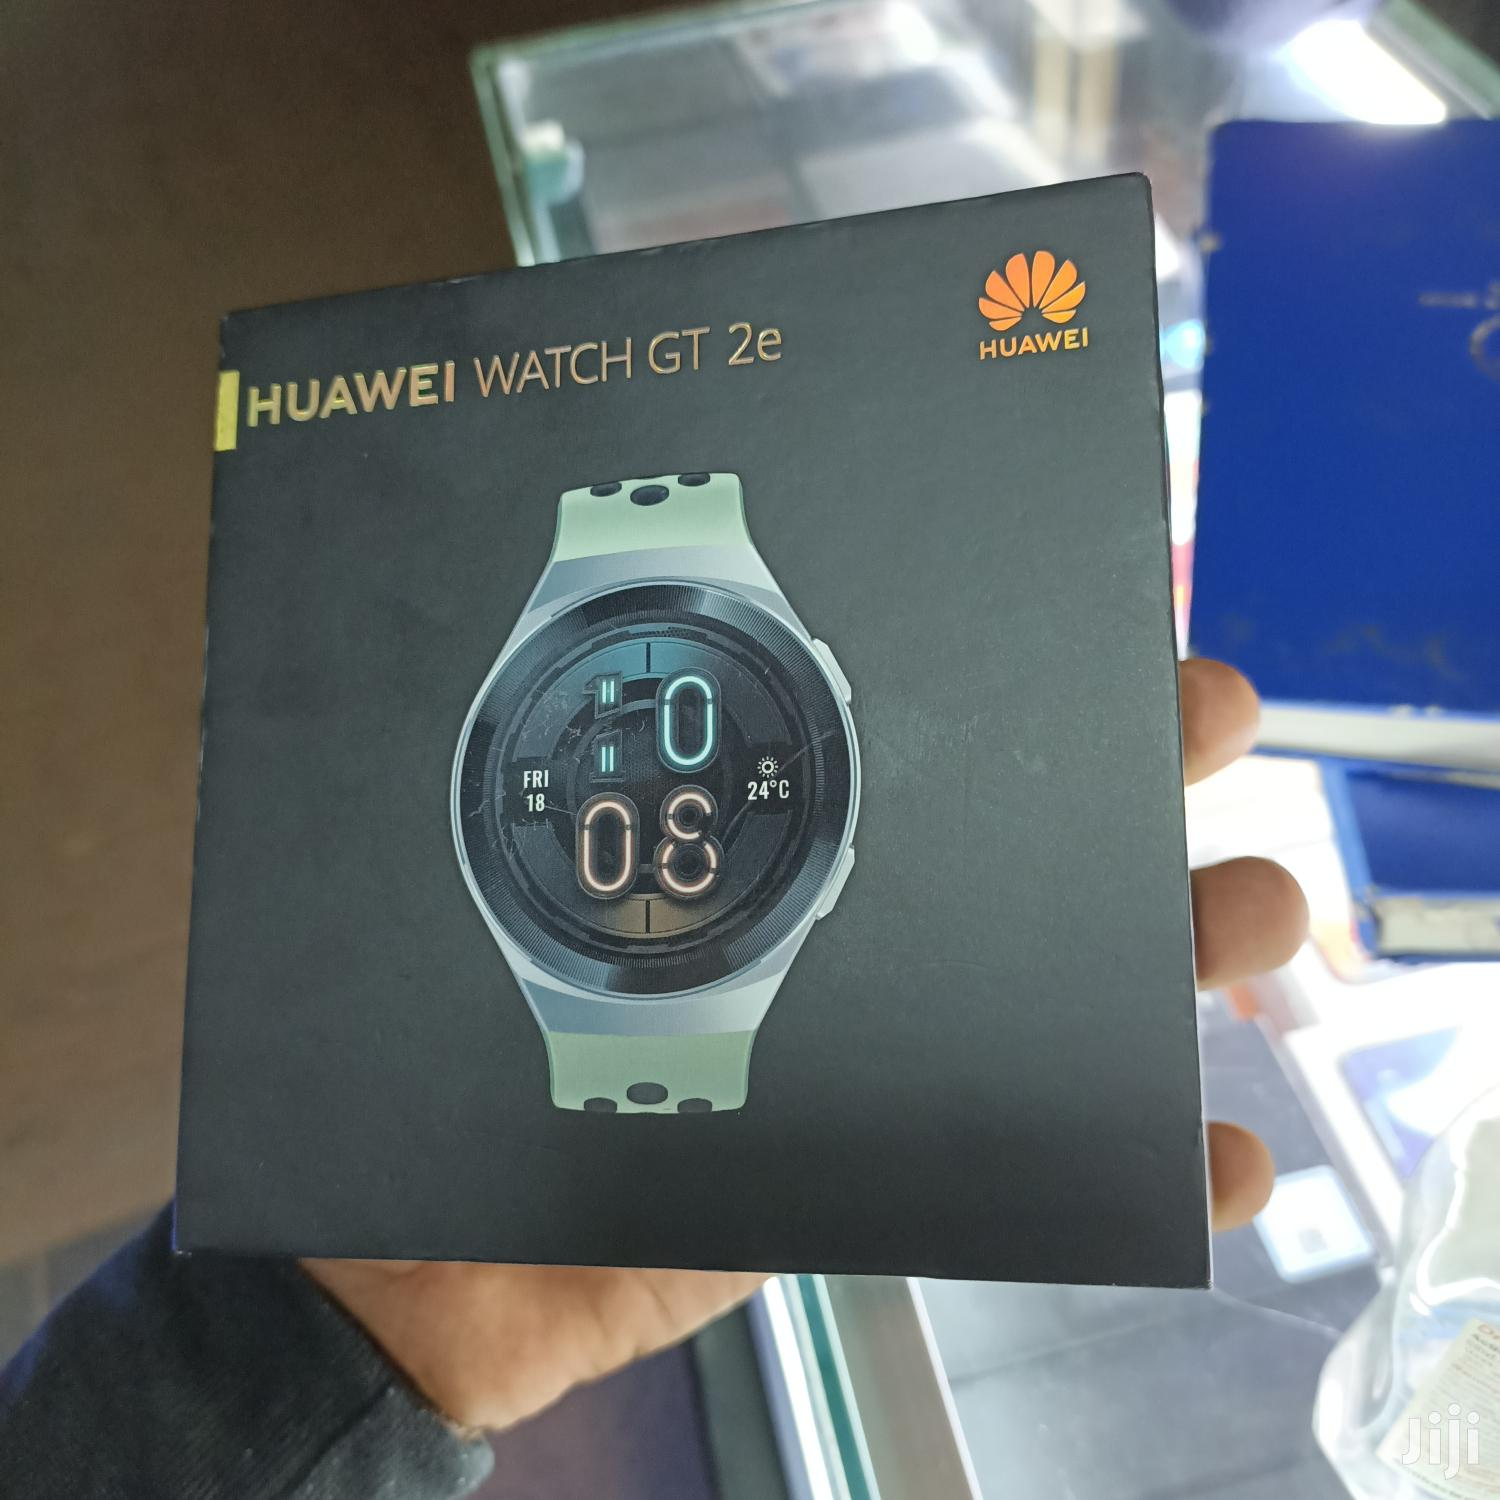 Brand New Huawei Watch GT 2e Powerful Battery | Smart Watches & Trackers for sale in Kampala, Central Region, Uganda